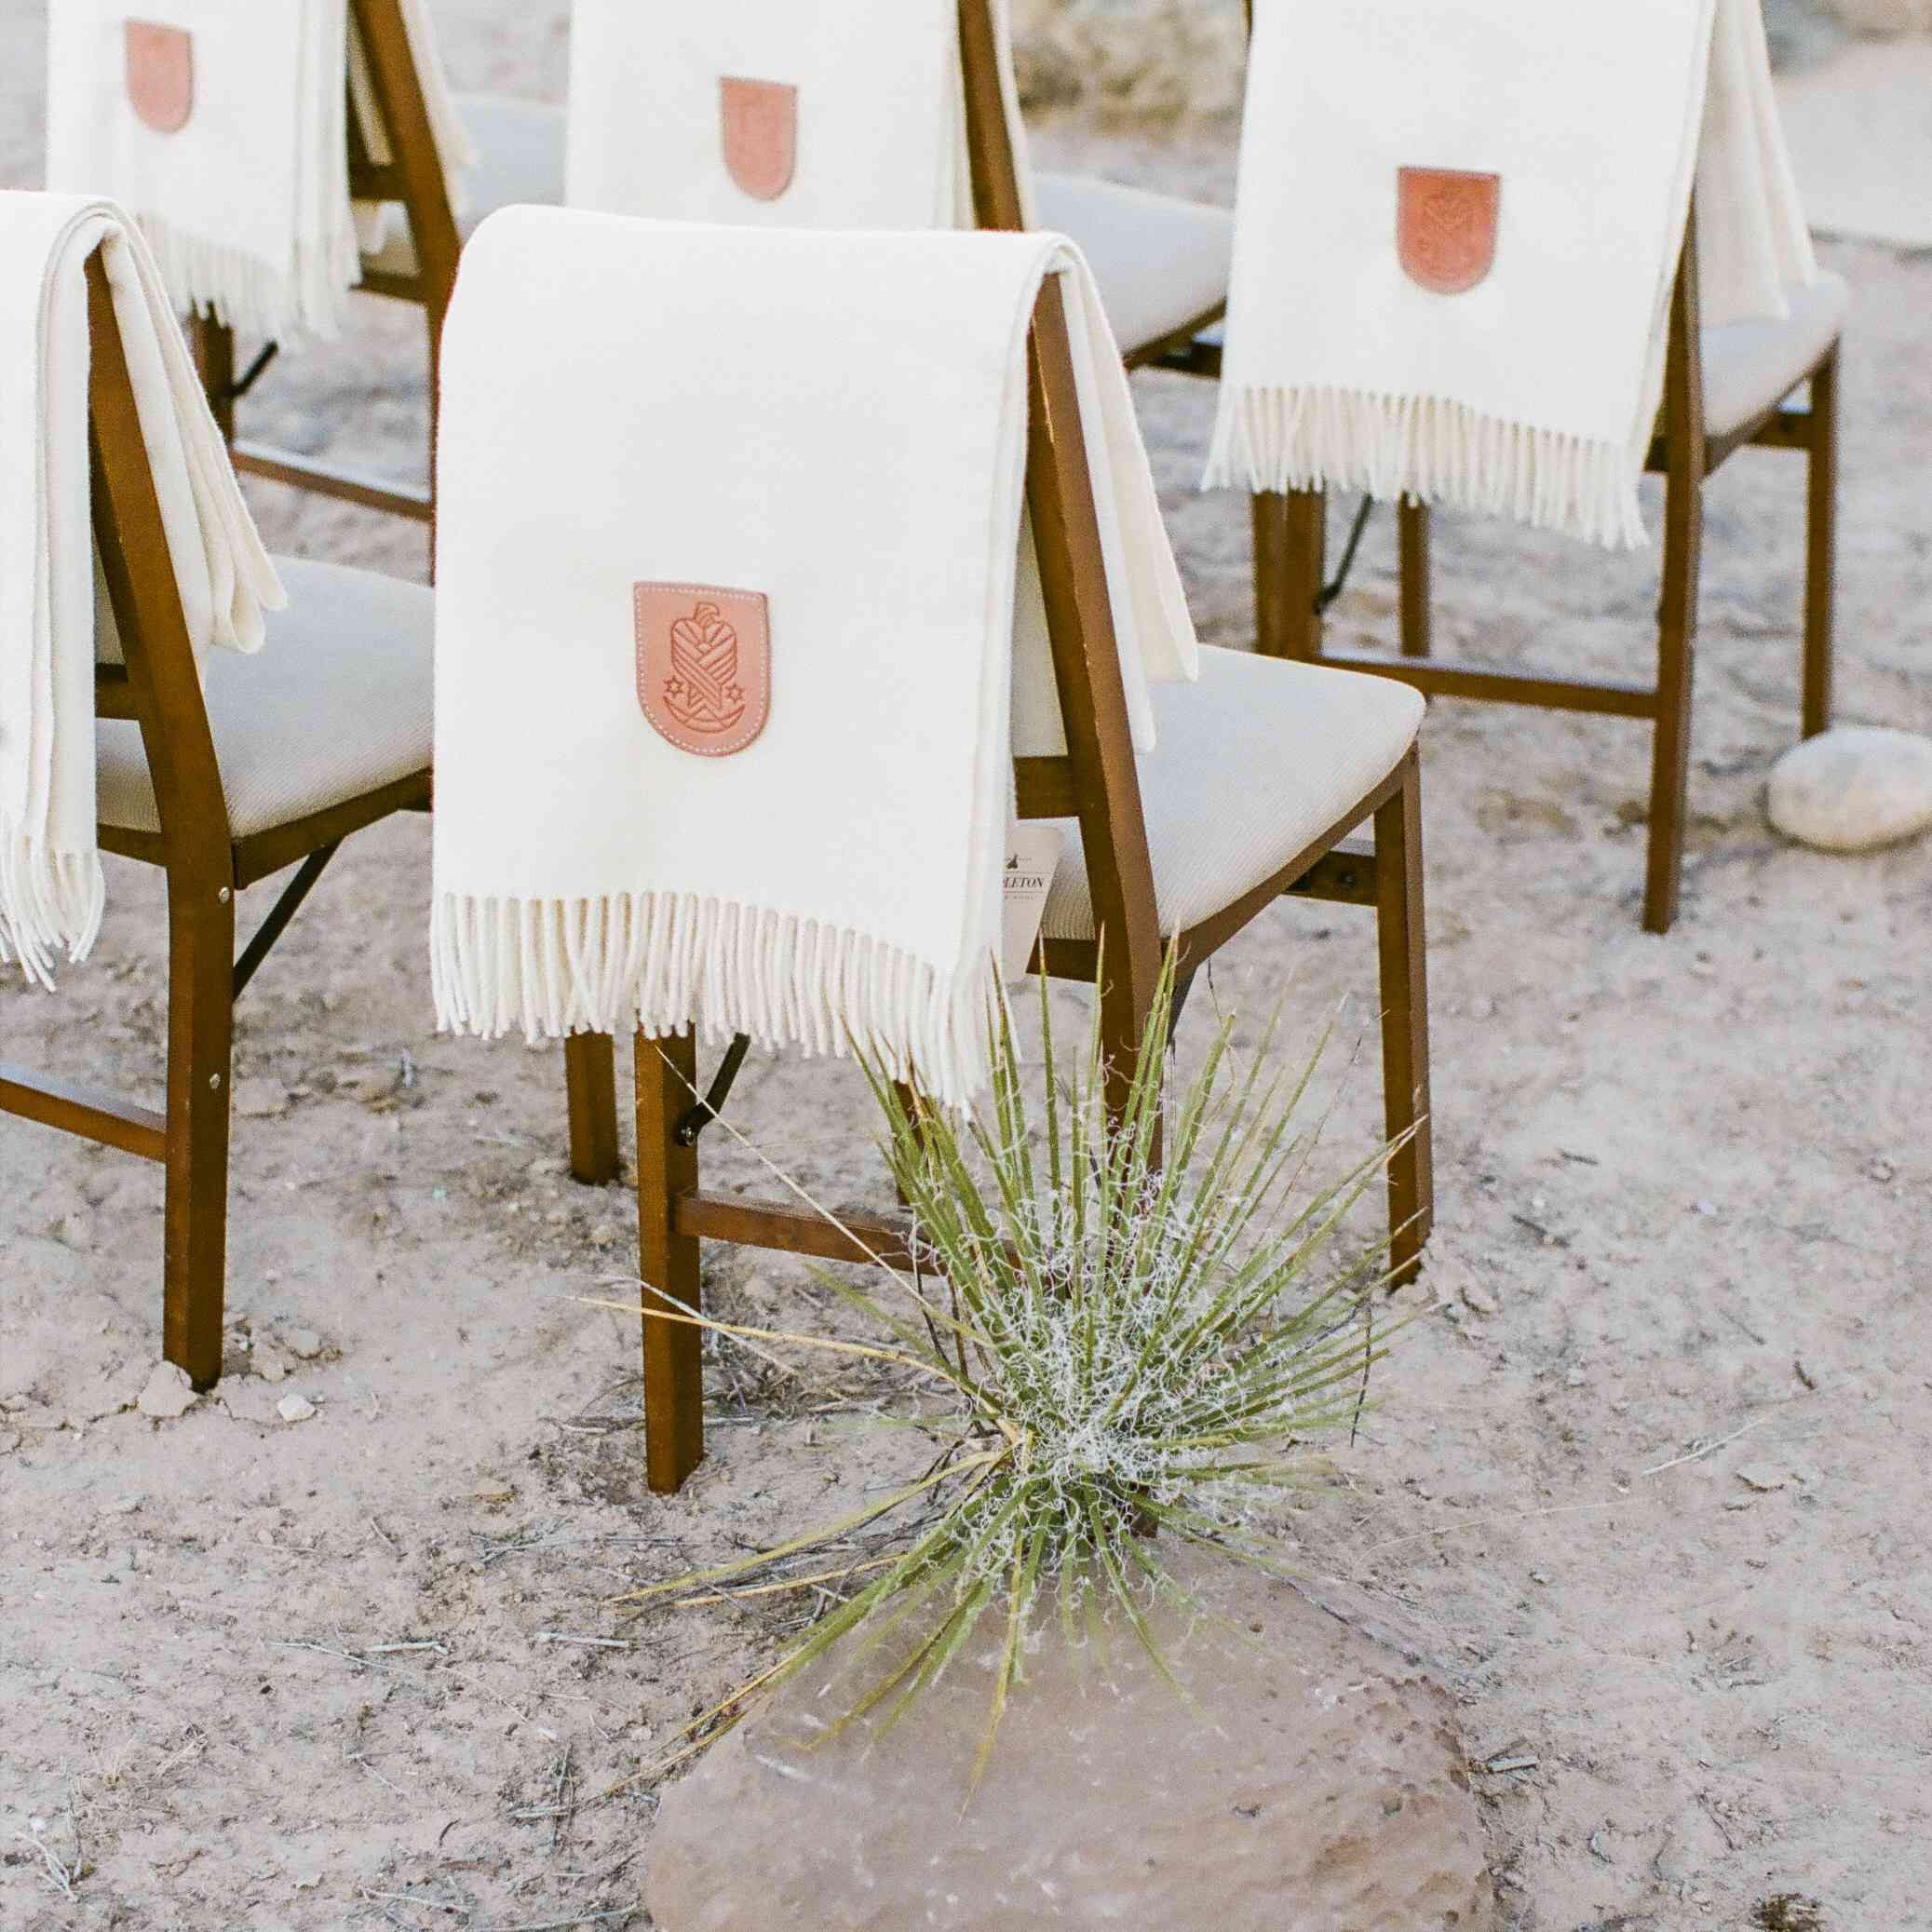 Warm blankets for outdoor ceremony seating in the fall or winter